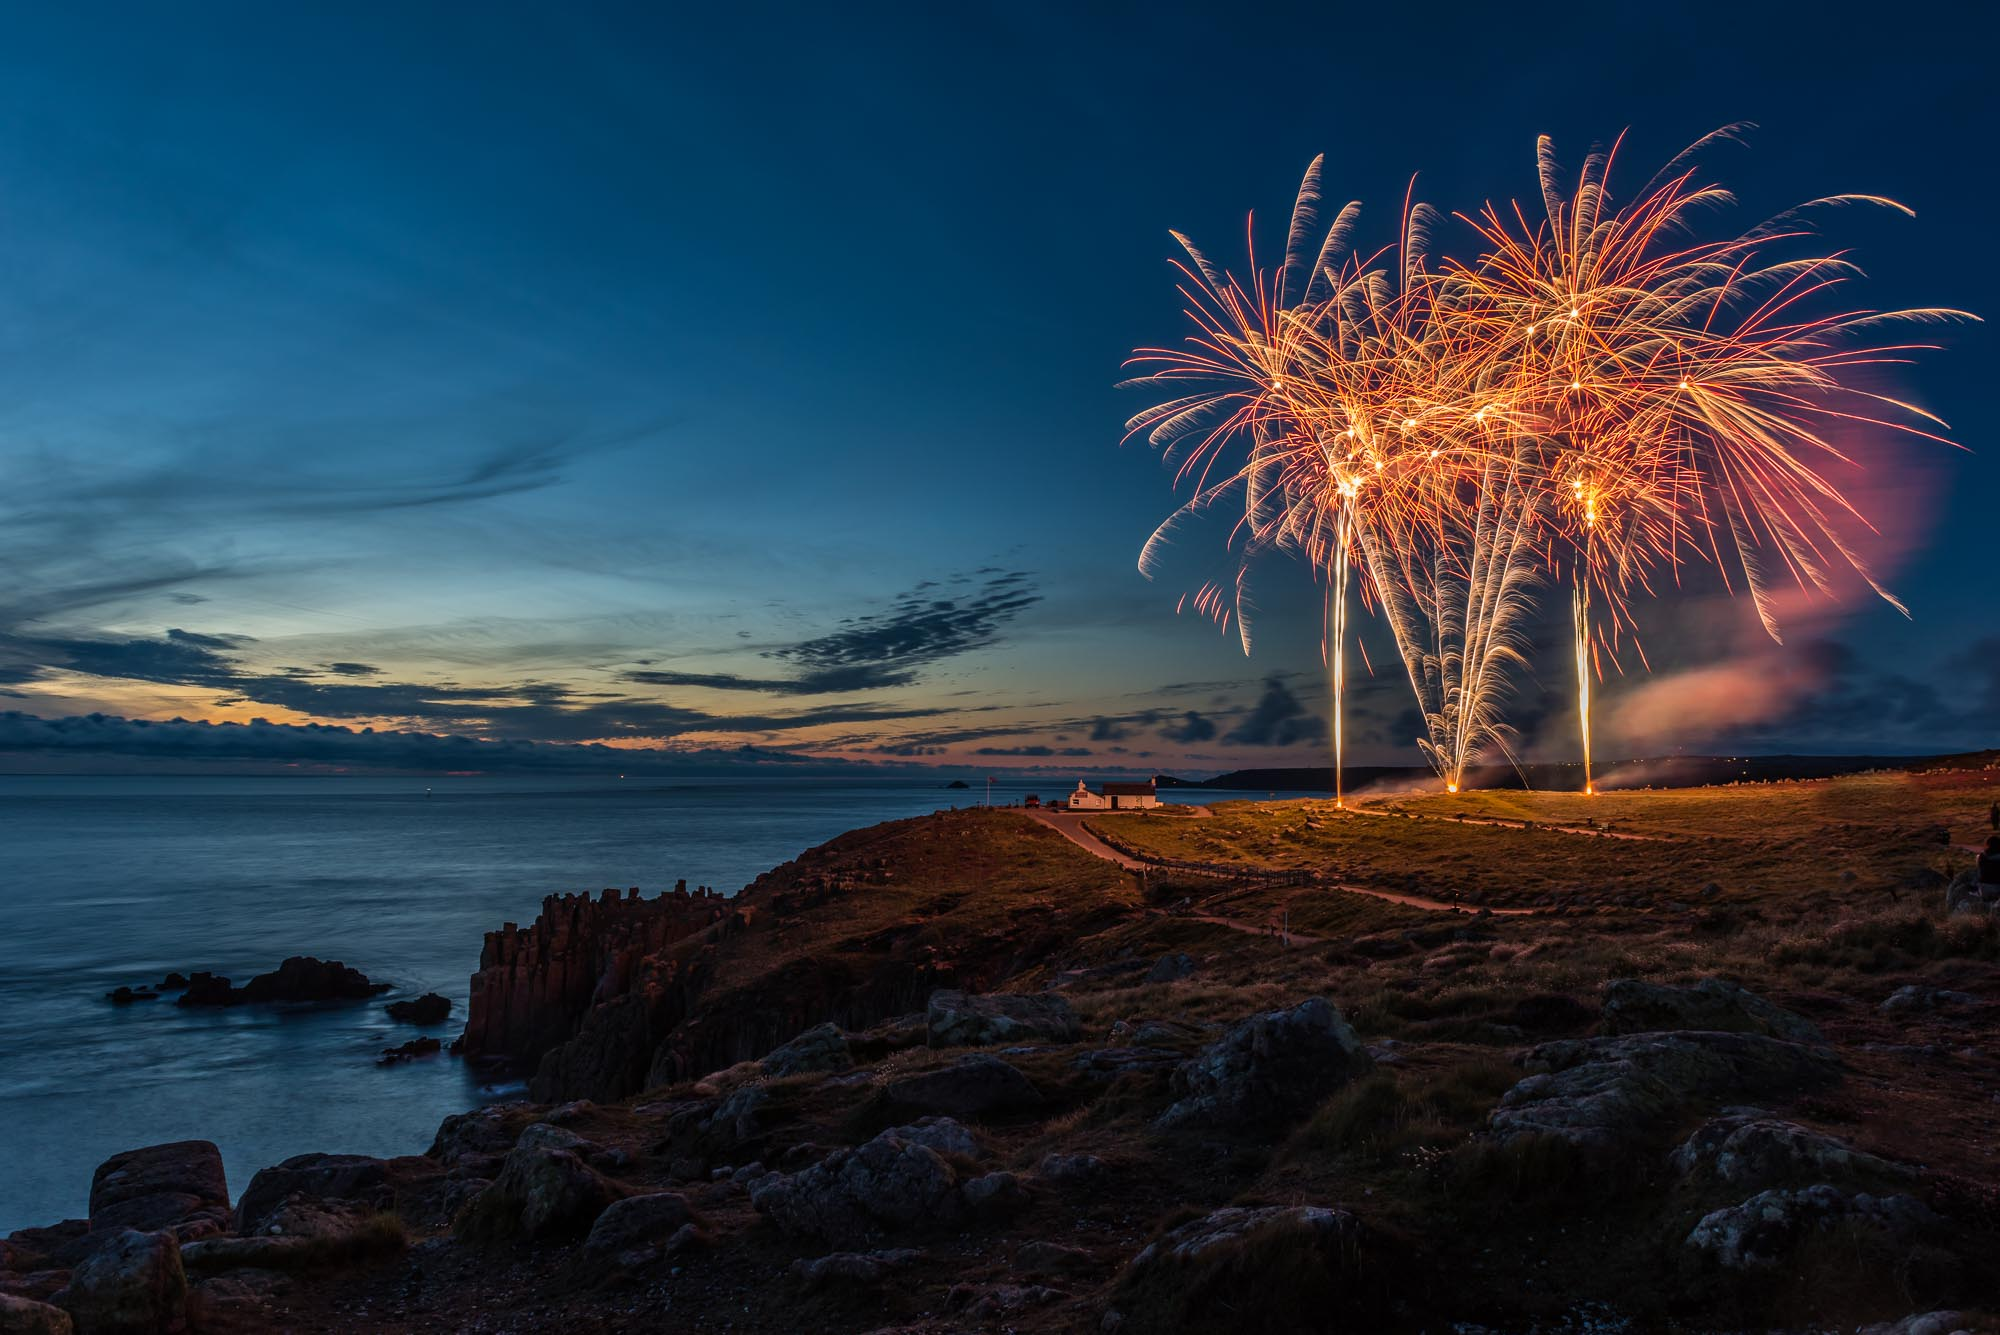 fireworks at night in cornwall